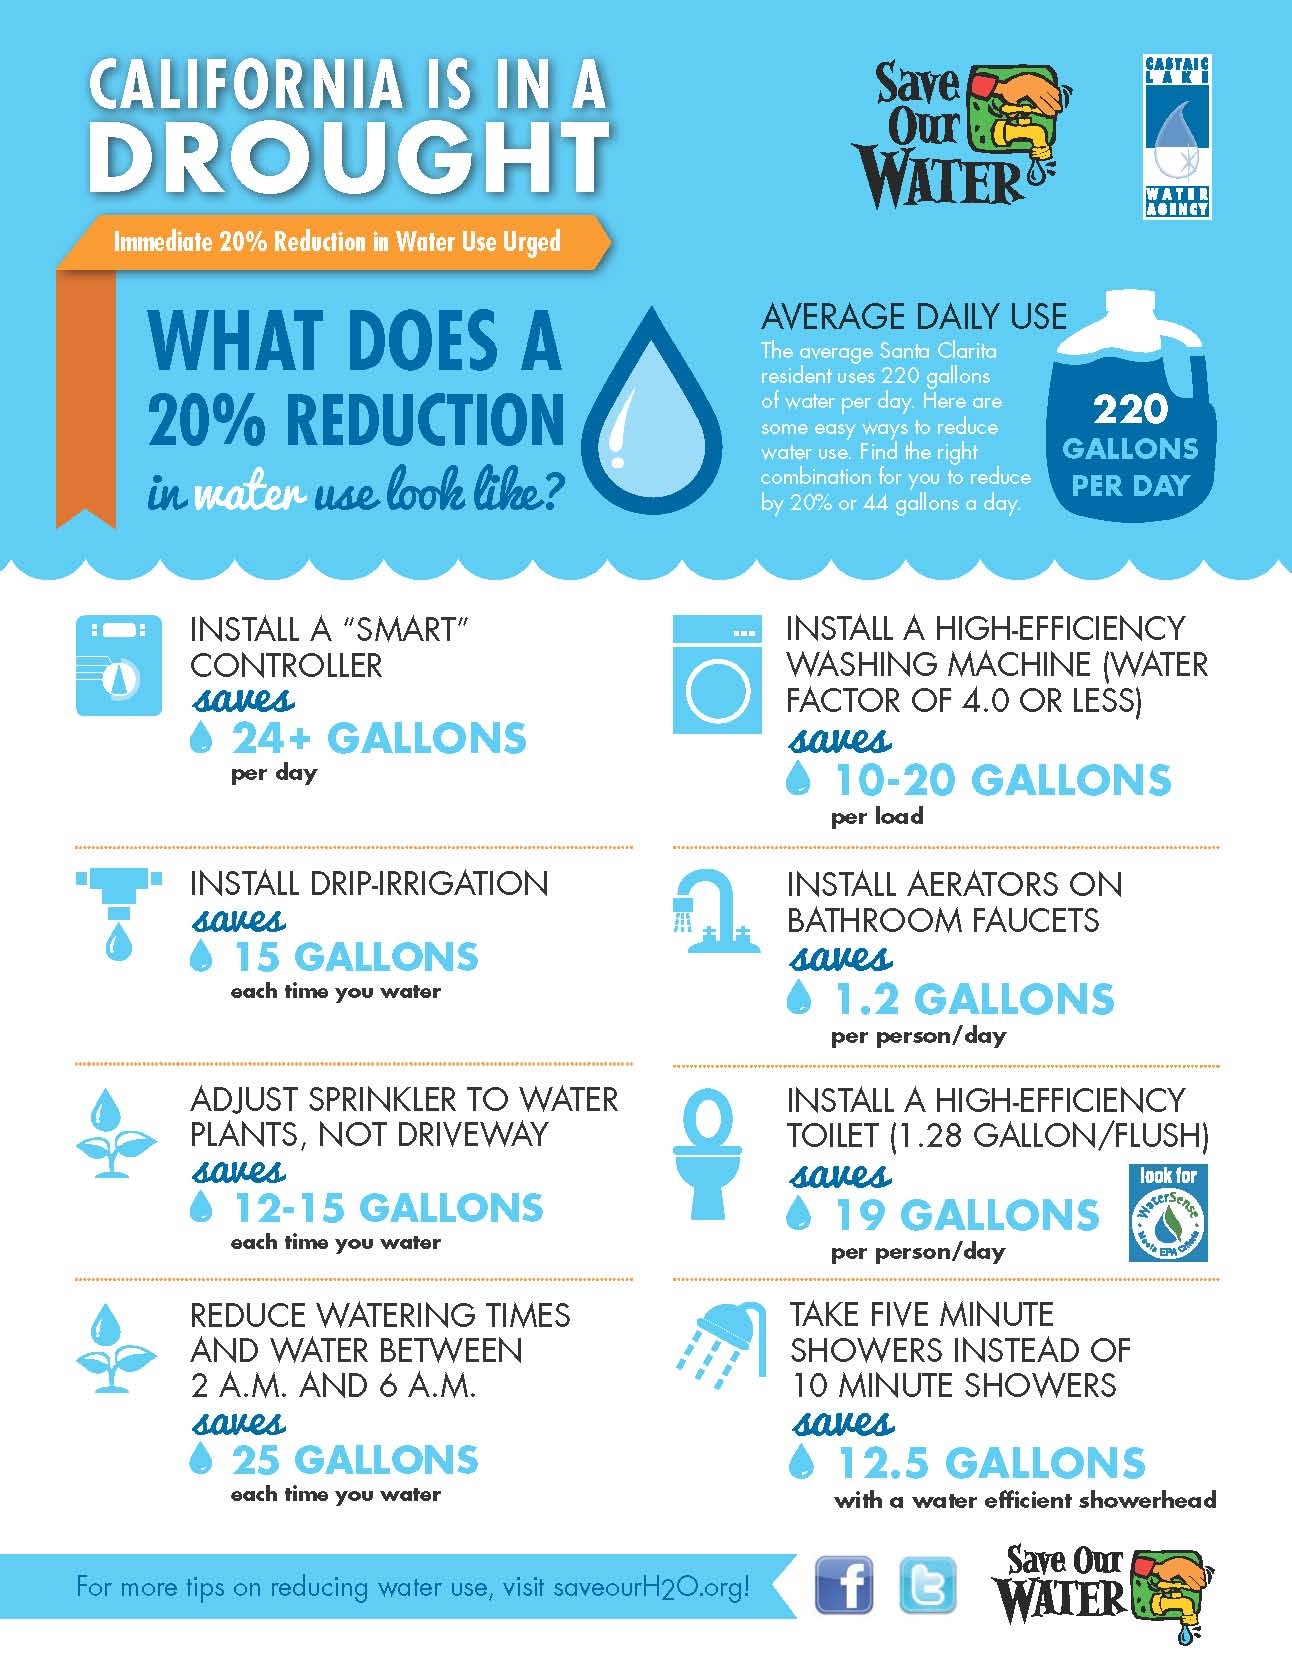 Water Conservation Tips and Best Practices